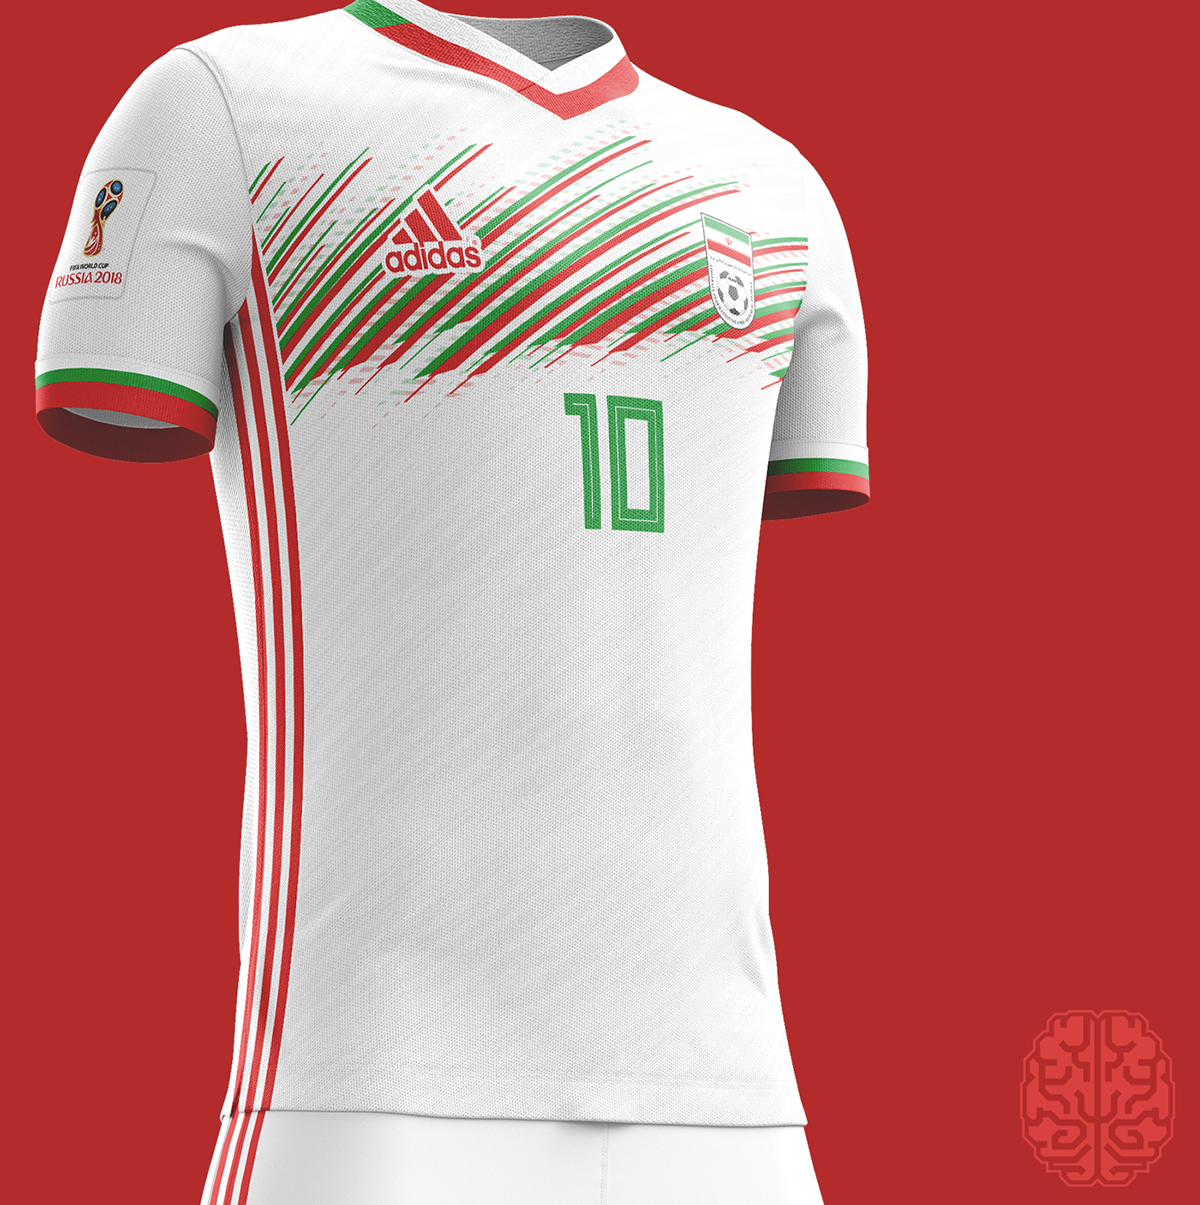 Fifa World Cup 2018 Kits Redesigned On Behance In 2020 World Cup 2018 World Cup Sports Design